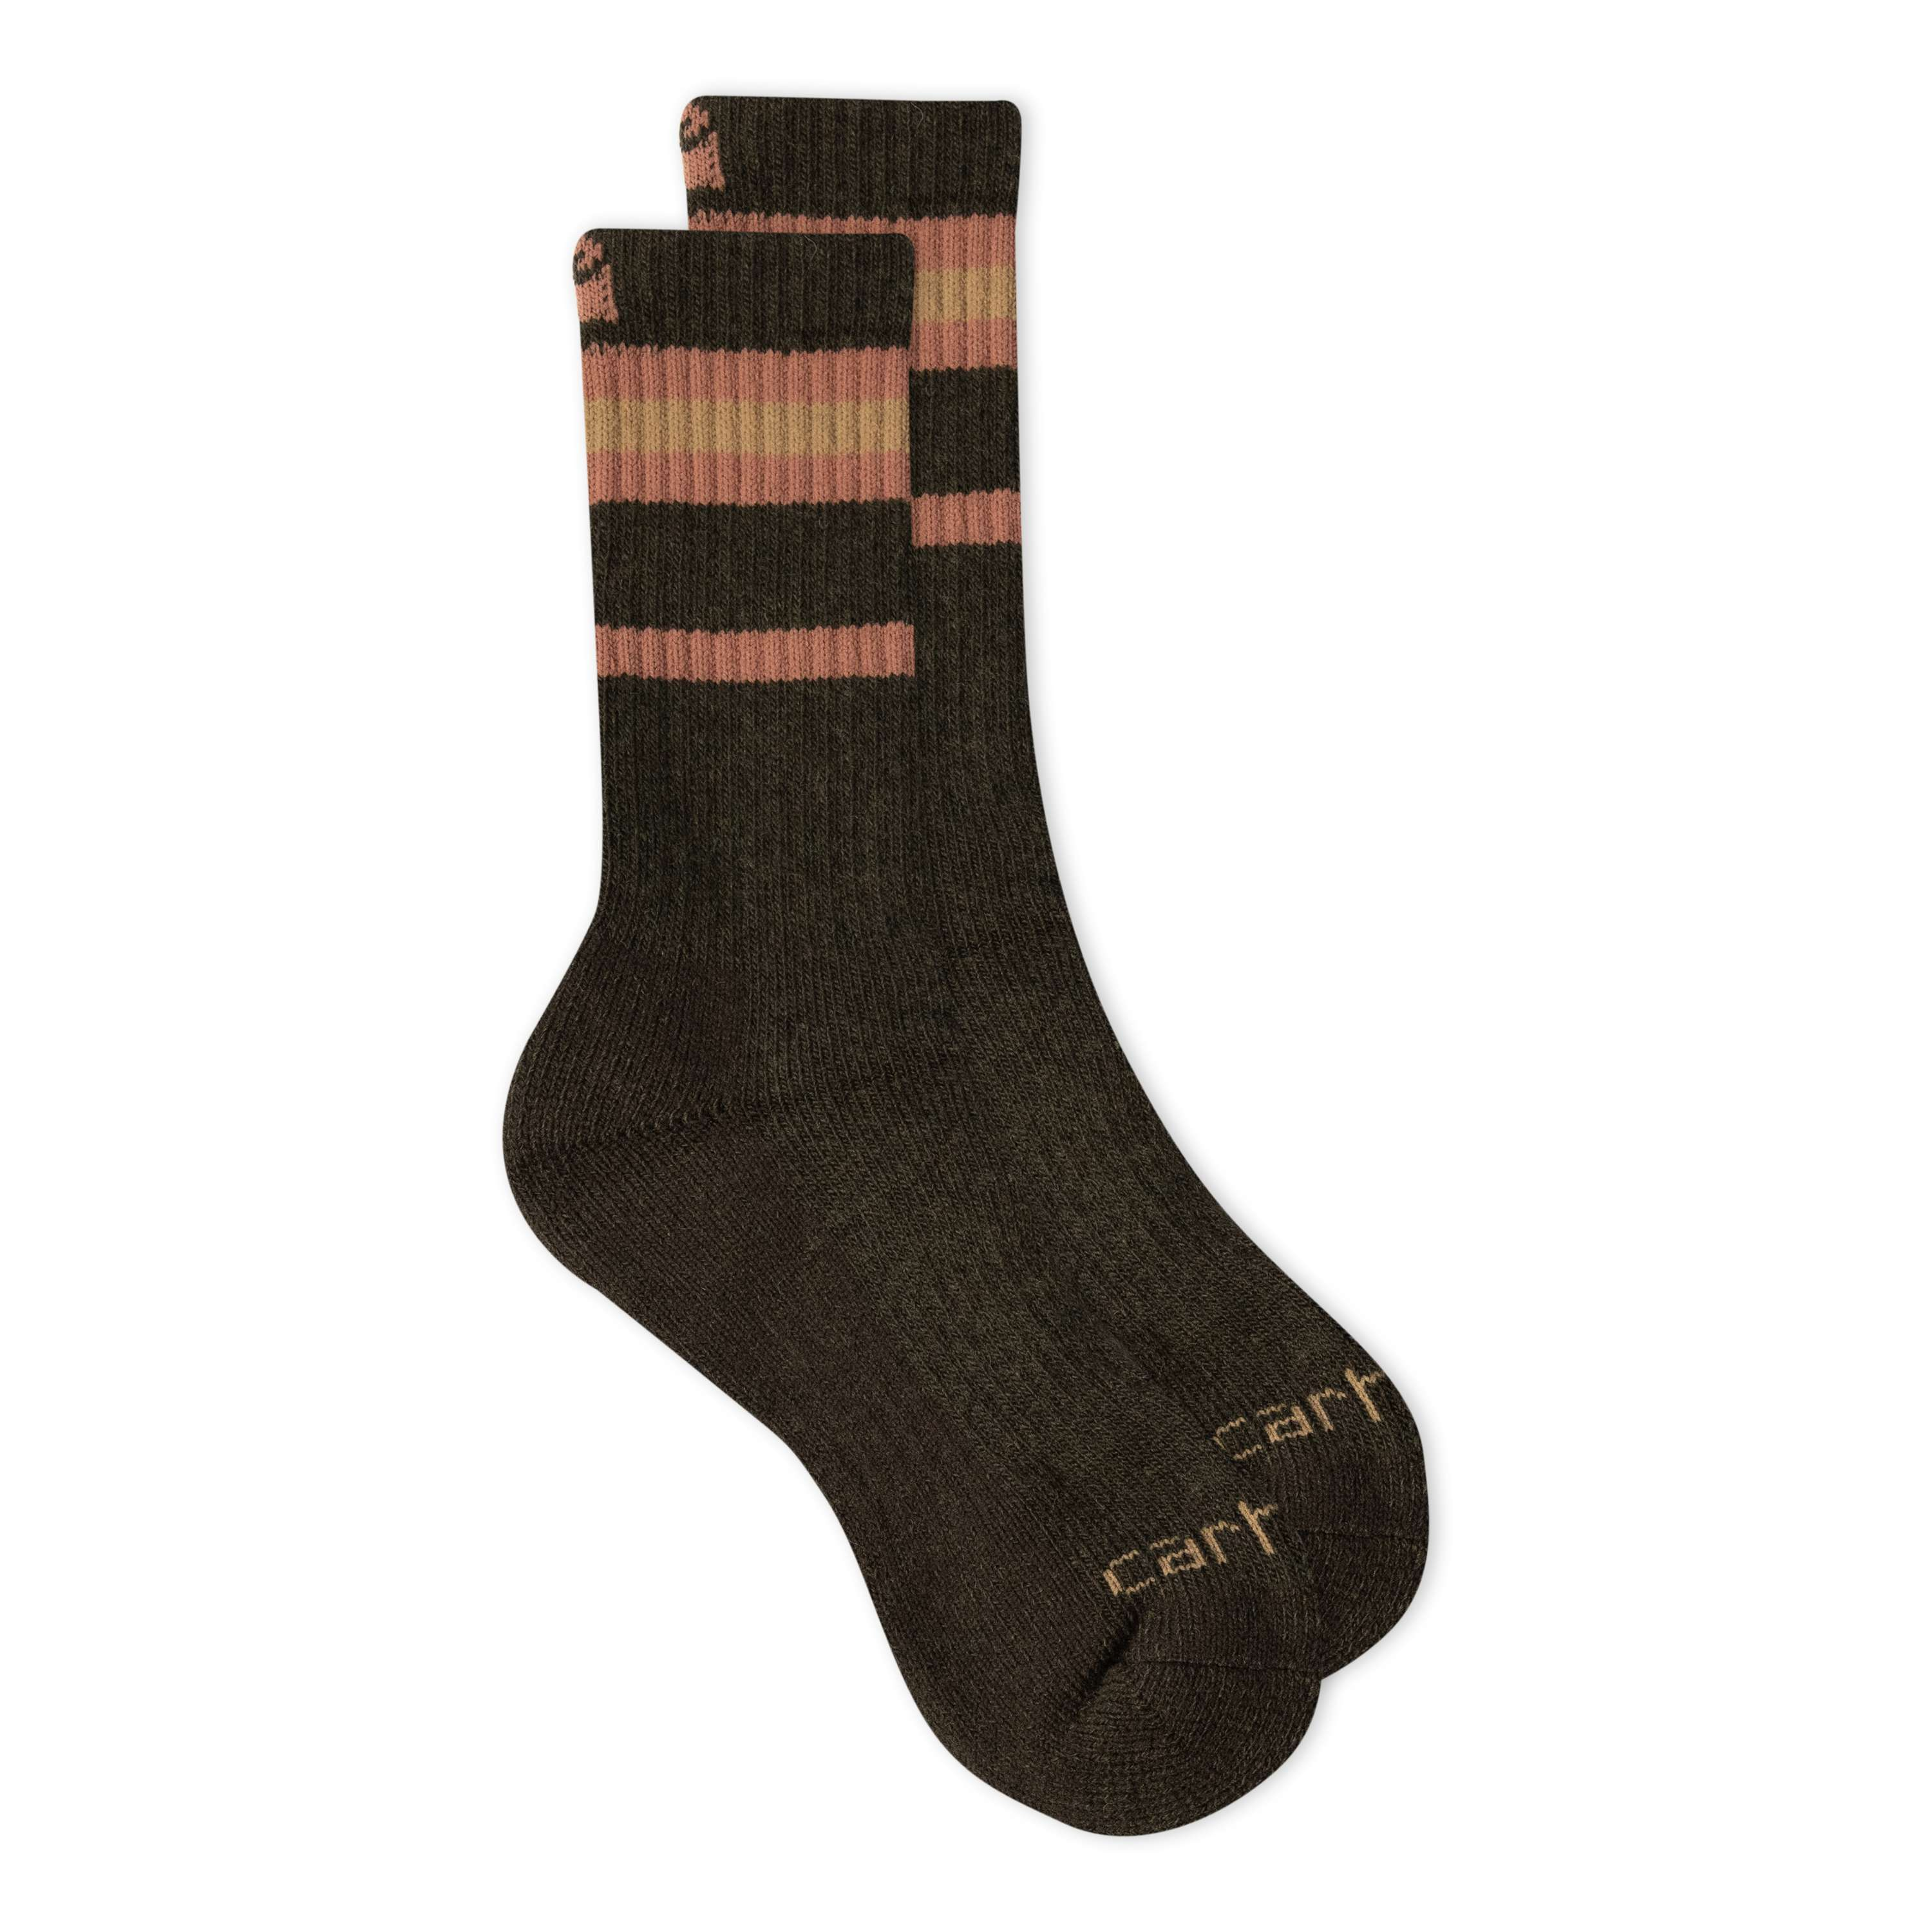 Carhartt Heavy Duty Thermal Crew Sock 2 Pack